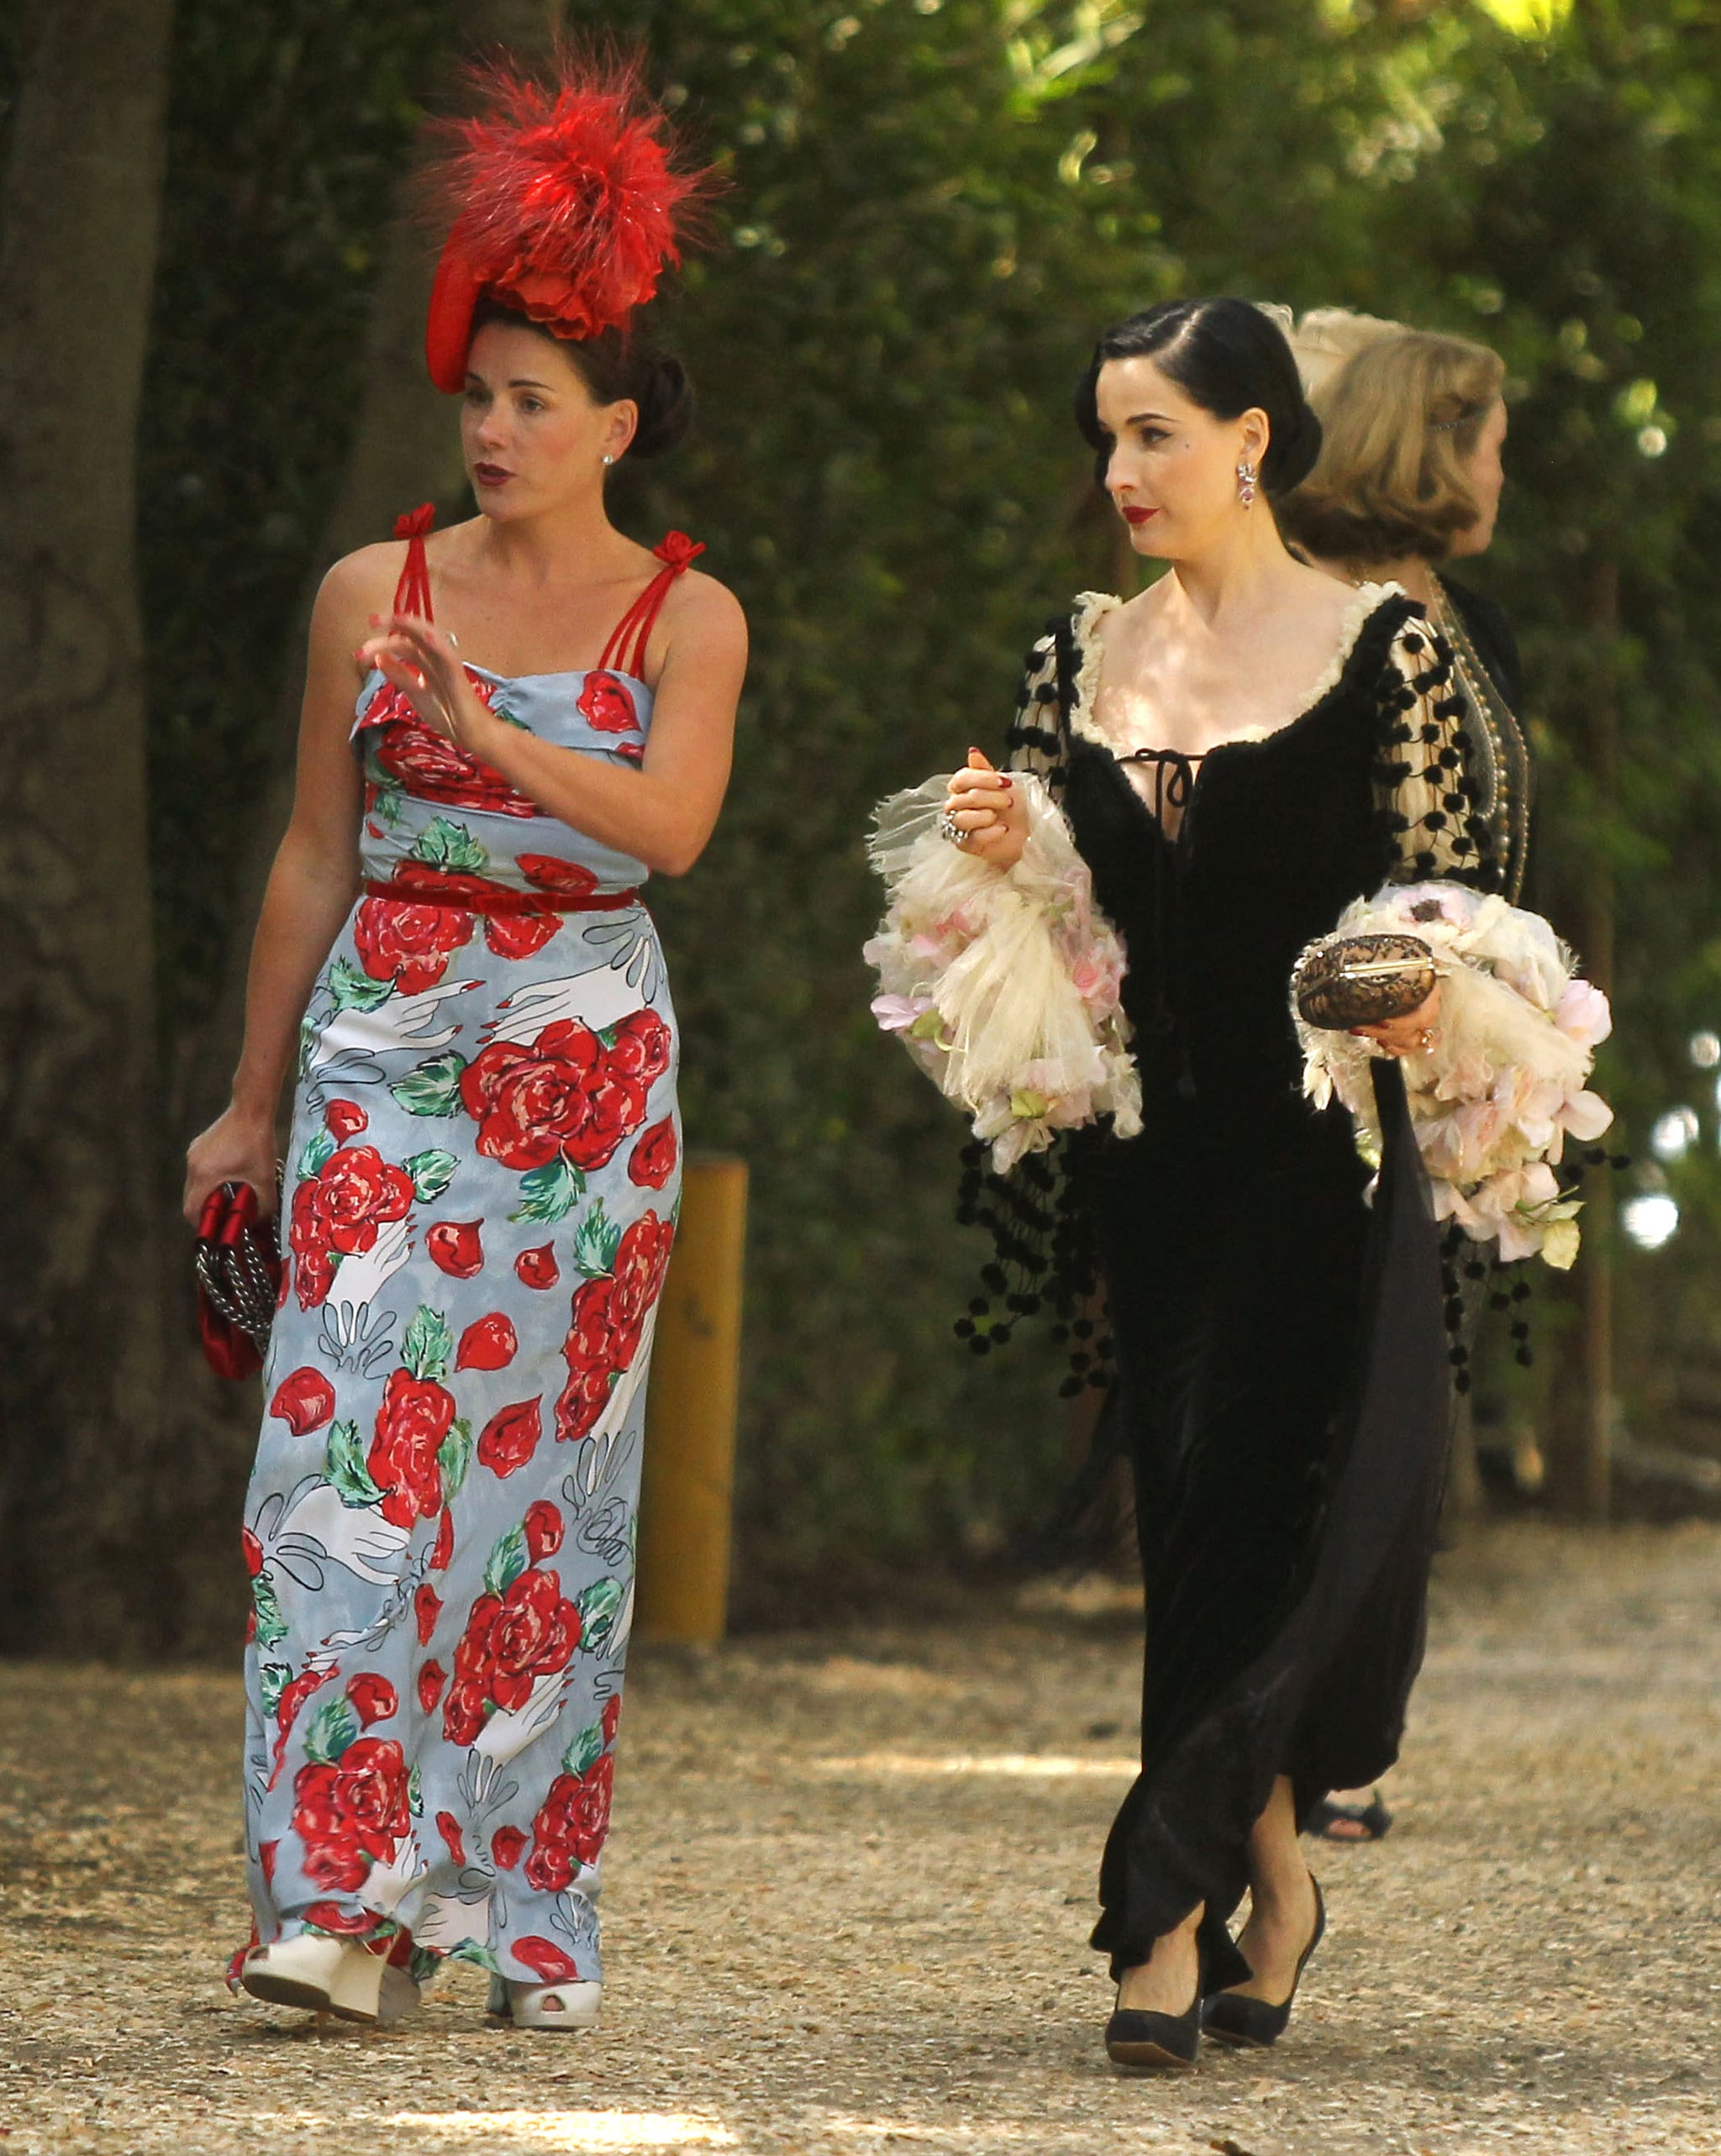 Dita Von Teese attended Aaron Paul and Lauren Parsekian's Malibu wedding in May wearing a black gown that only a burlesque queen could pull off. Get Dita's vintage-inspired feel with an equally whimsical gown, preferably with adorable pom-poms.